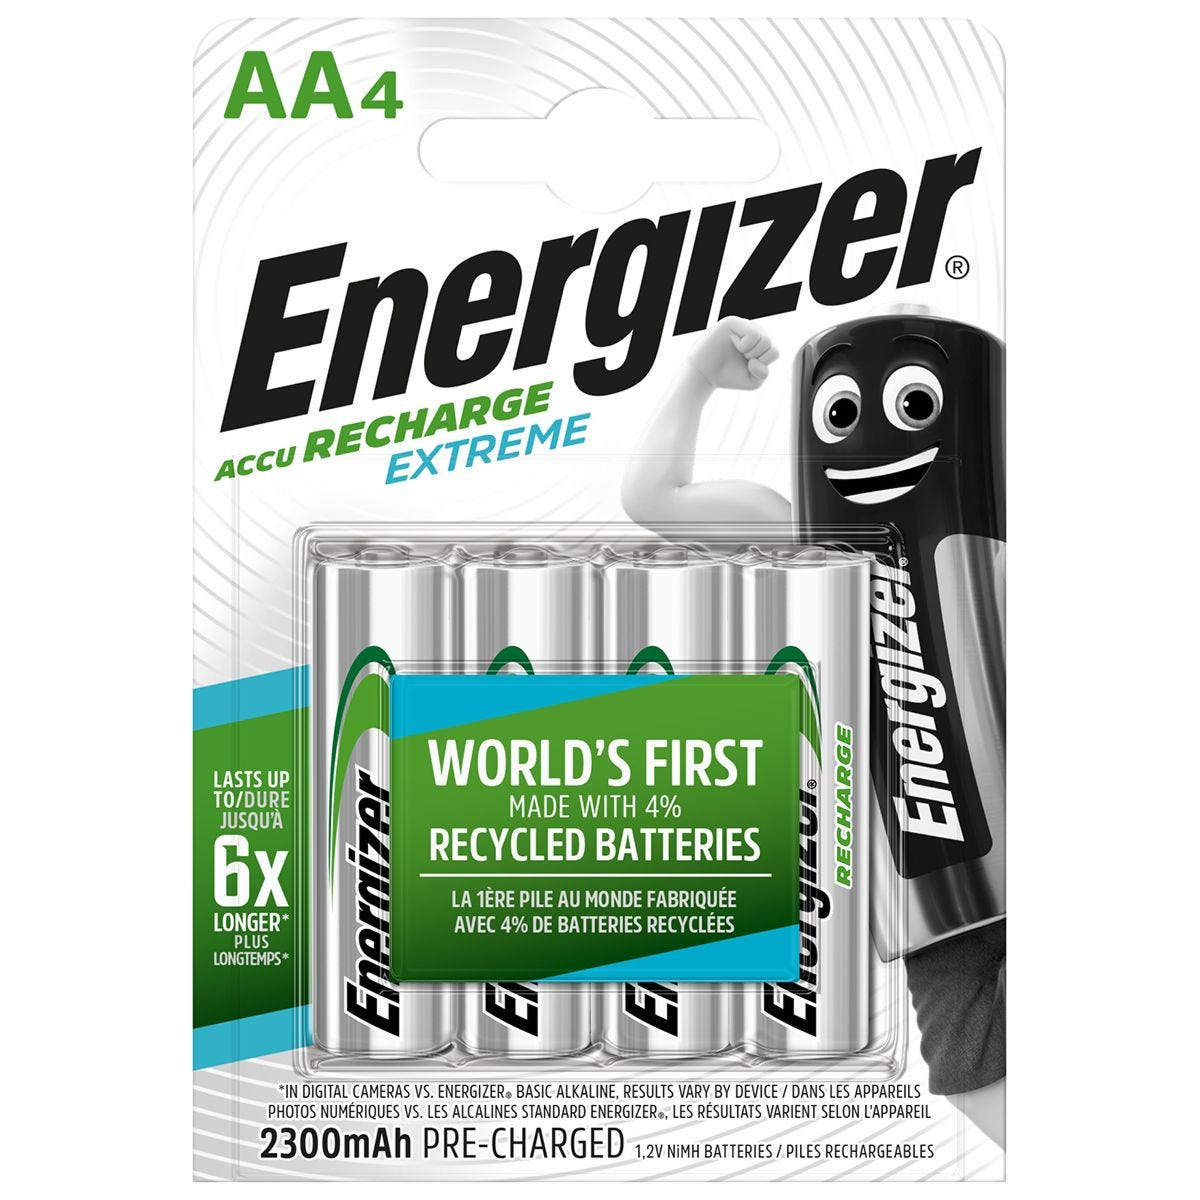 Energizer Accu Rechargeable Batteries AA - Pack of 4